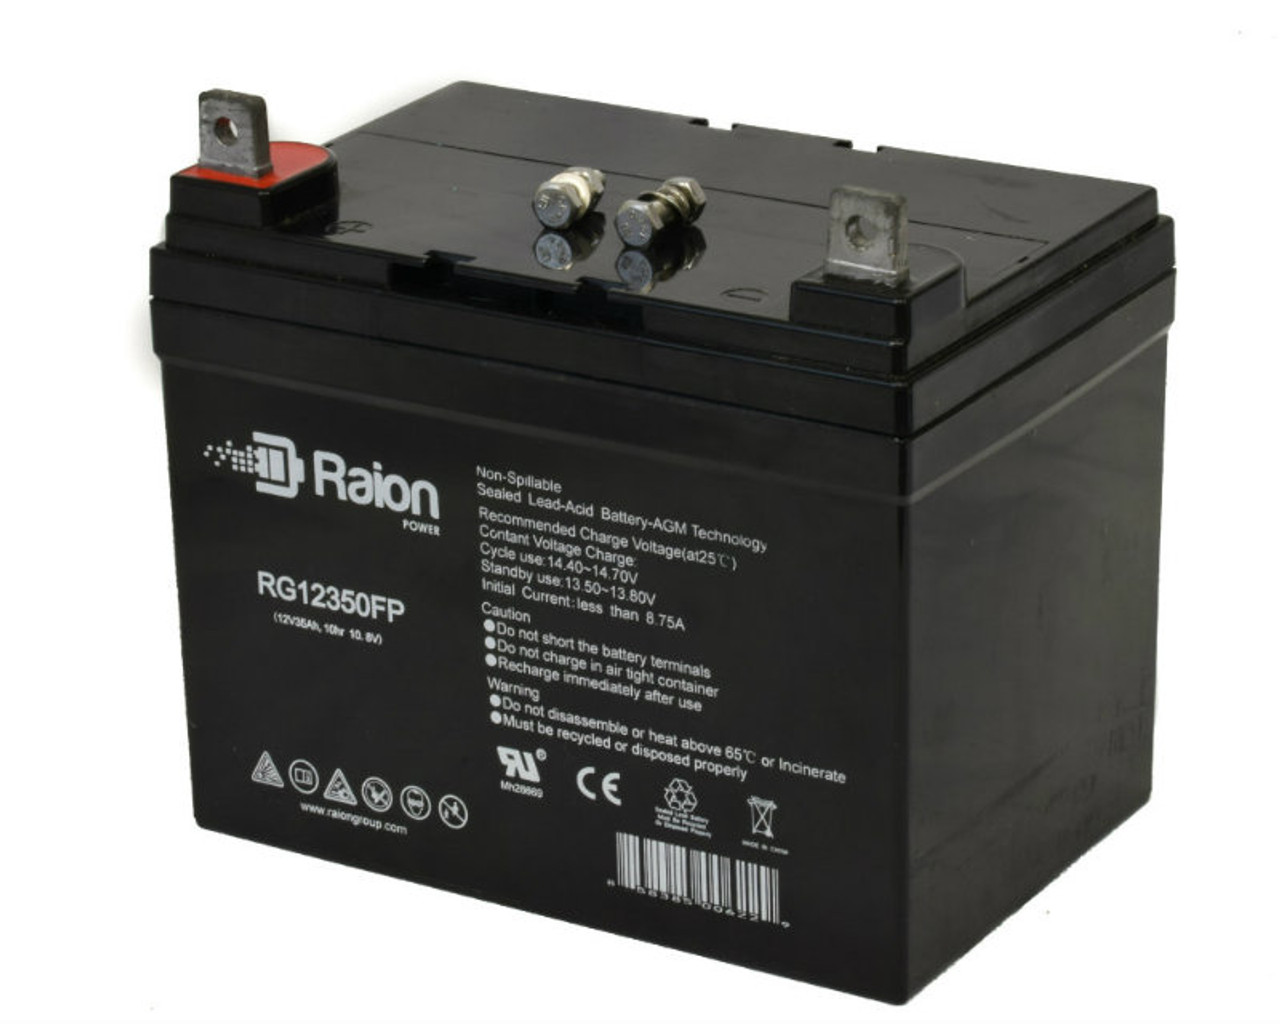 RG12350FP Sealed Lead Acid Battery Pack For Karma Medical Products KS-747 Mobility Scooter